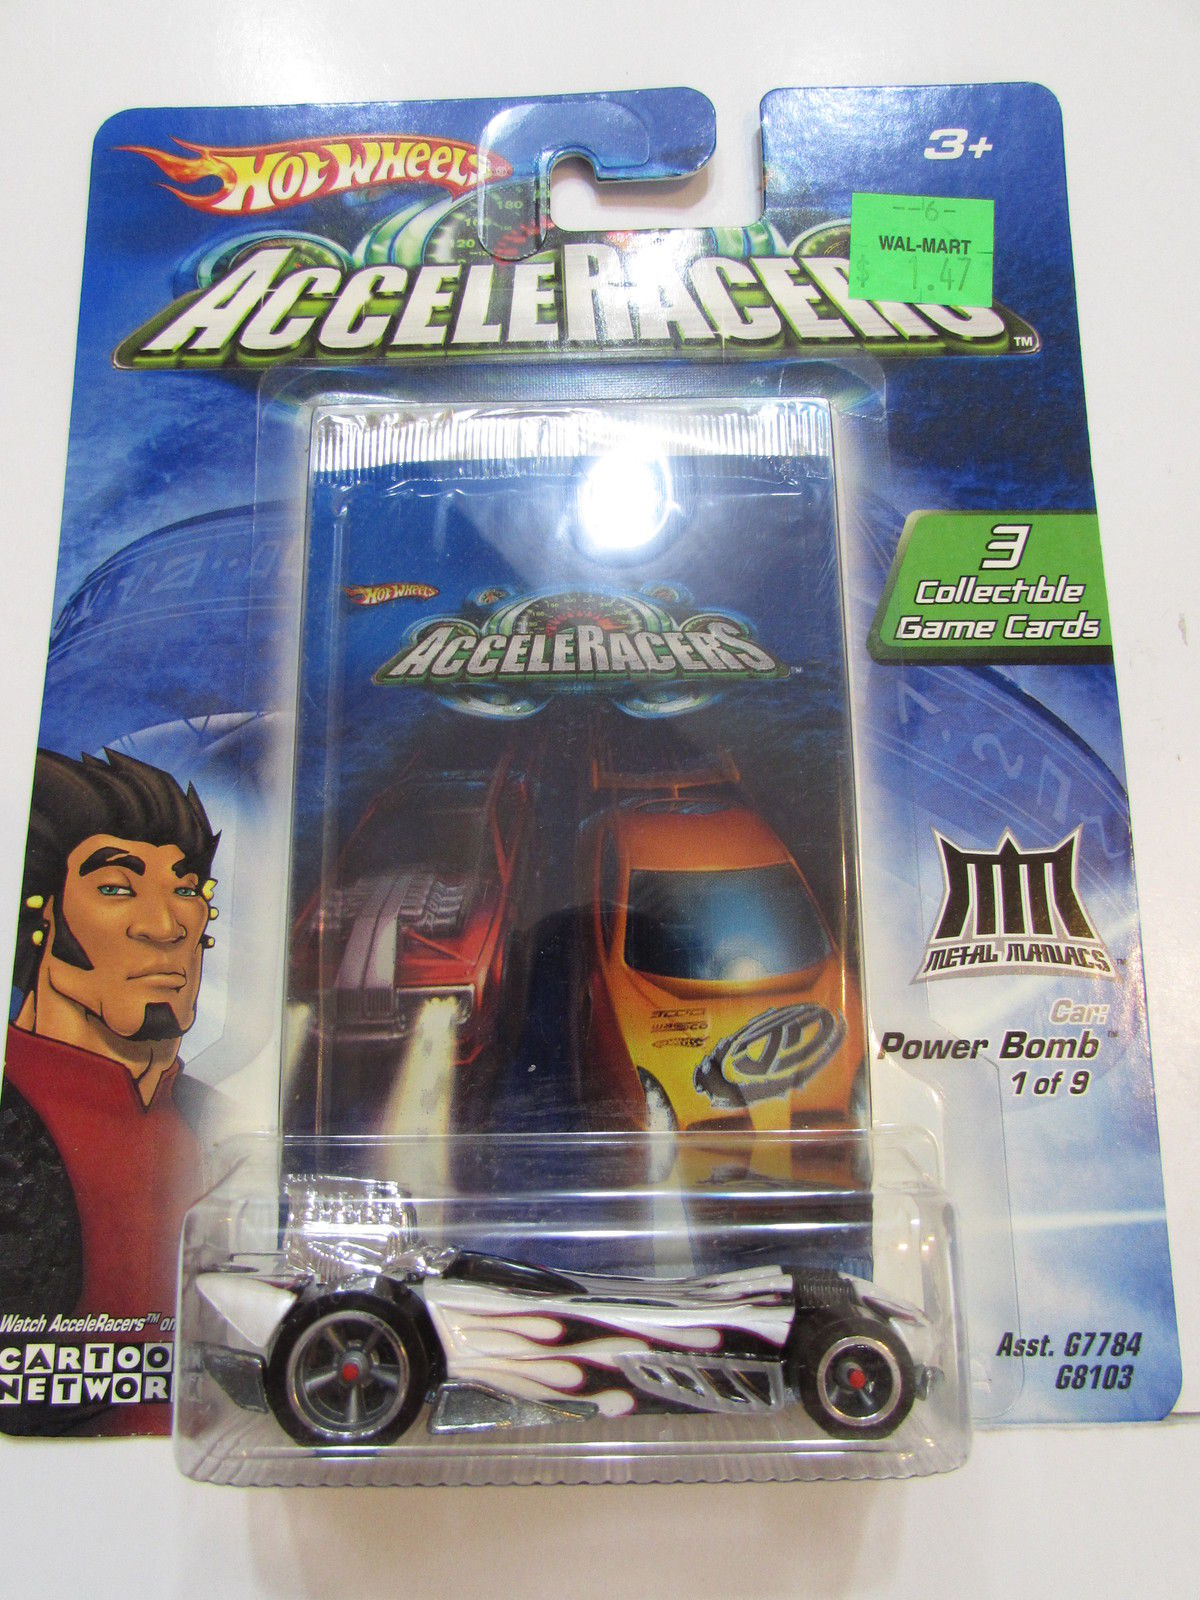 2004 HOT WHEELS ACCELERACERS POWER BOMB #1/9 3 COLLECTIBLE GAME CARDS